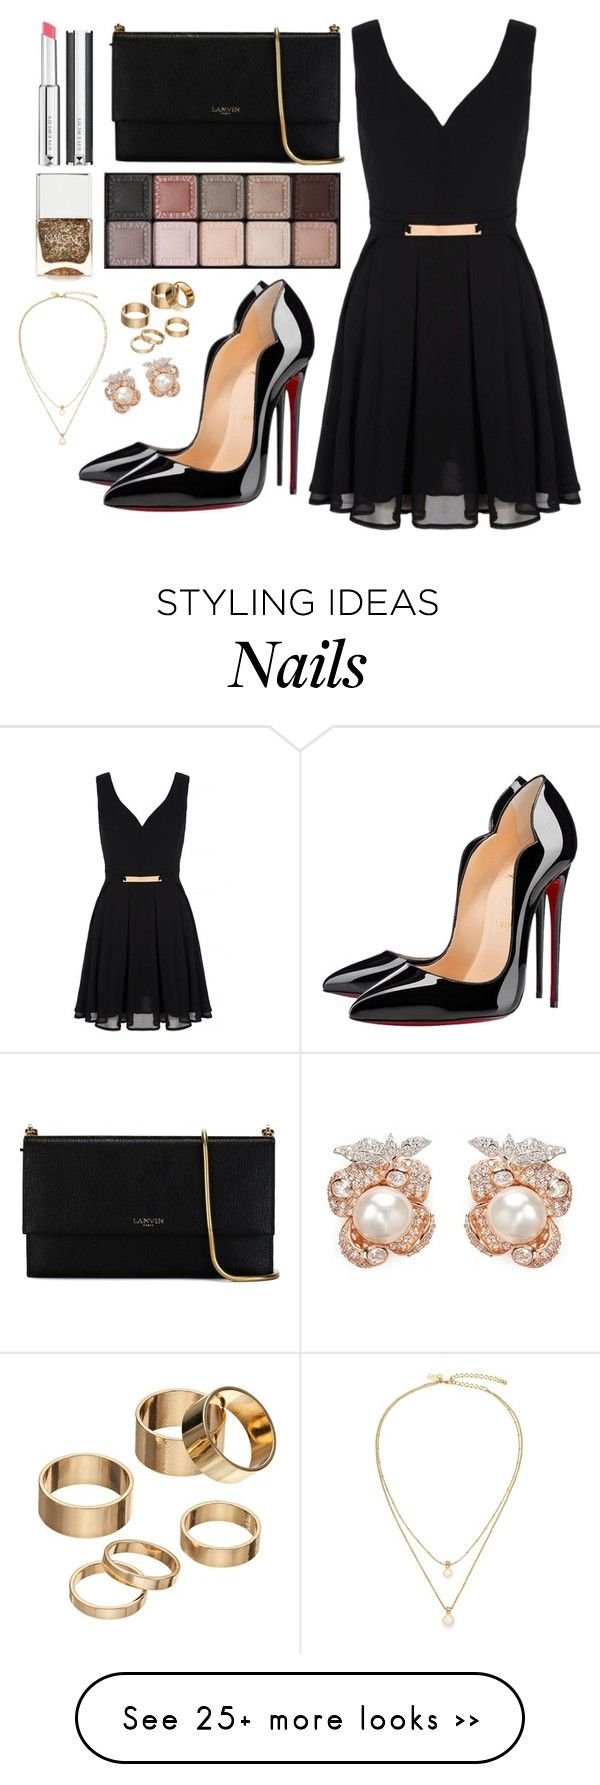 """""""60 Second Style: NYFW After Party"""" by fabubilous on Polyvore featuring Lanvin, Christian Louboutin, Mela Loves London, Givenchy, By Terry, Nails Inc., Apt. 9, Kate Spade and Anabela Chan"""